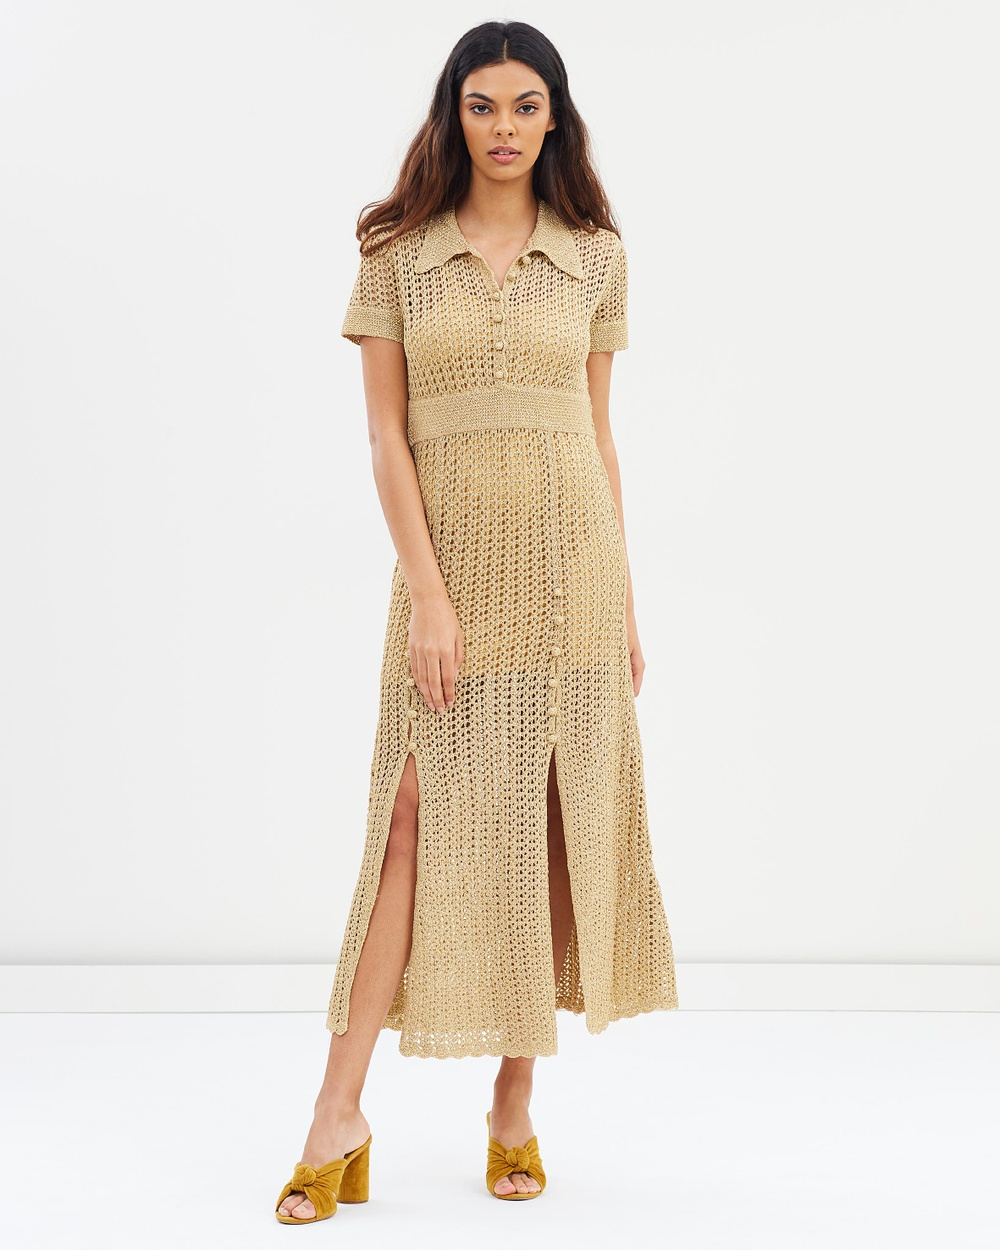 Photo of alice McCALL alice McCALL Bijou Bijou Dress Dresses Gold Bijou Bijou Dress - Intricately crafted from a combination of hand- and machine-crocheted metallic gold knit, the Bijou Bijou Dress exemplifies alice McCALL's sense of modern whimsy. This midi-length silhouette is rendered in soft metallic gold and finished with a sportive polo collar for a shot of contrast. Our model is wearing a size AU 8 dress. She is 177.8cm (5'10